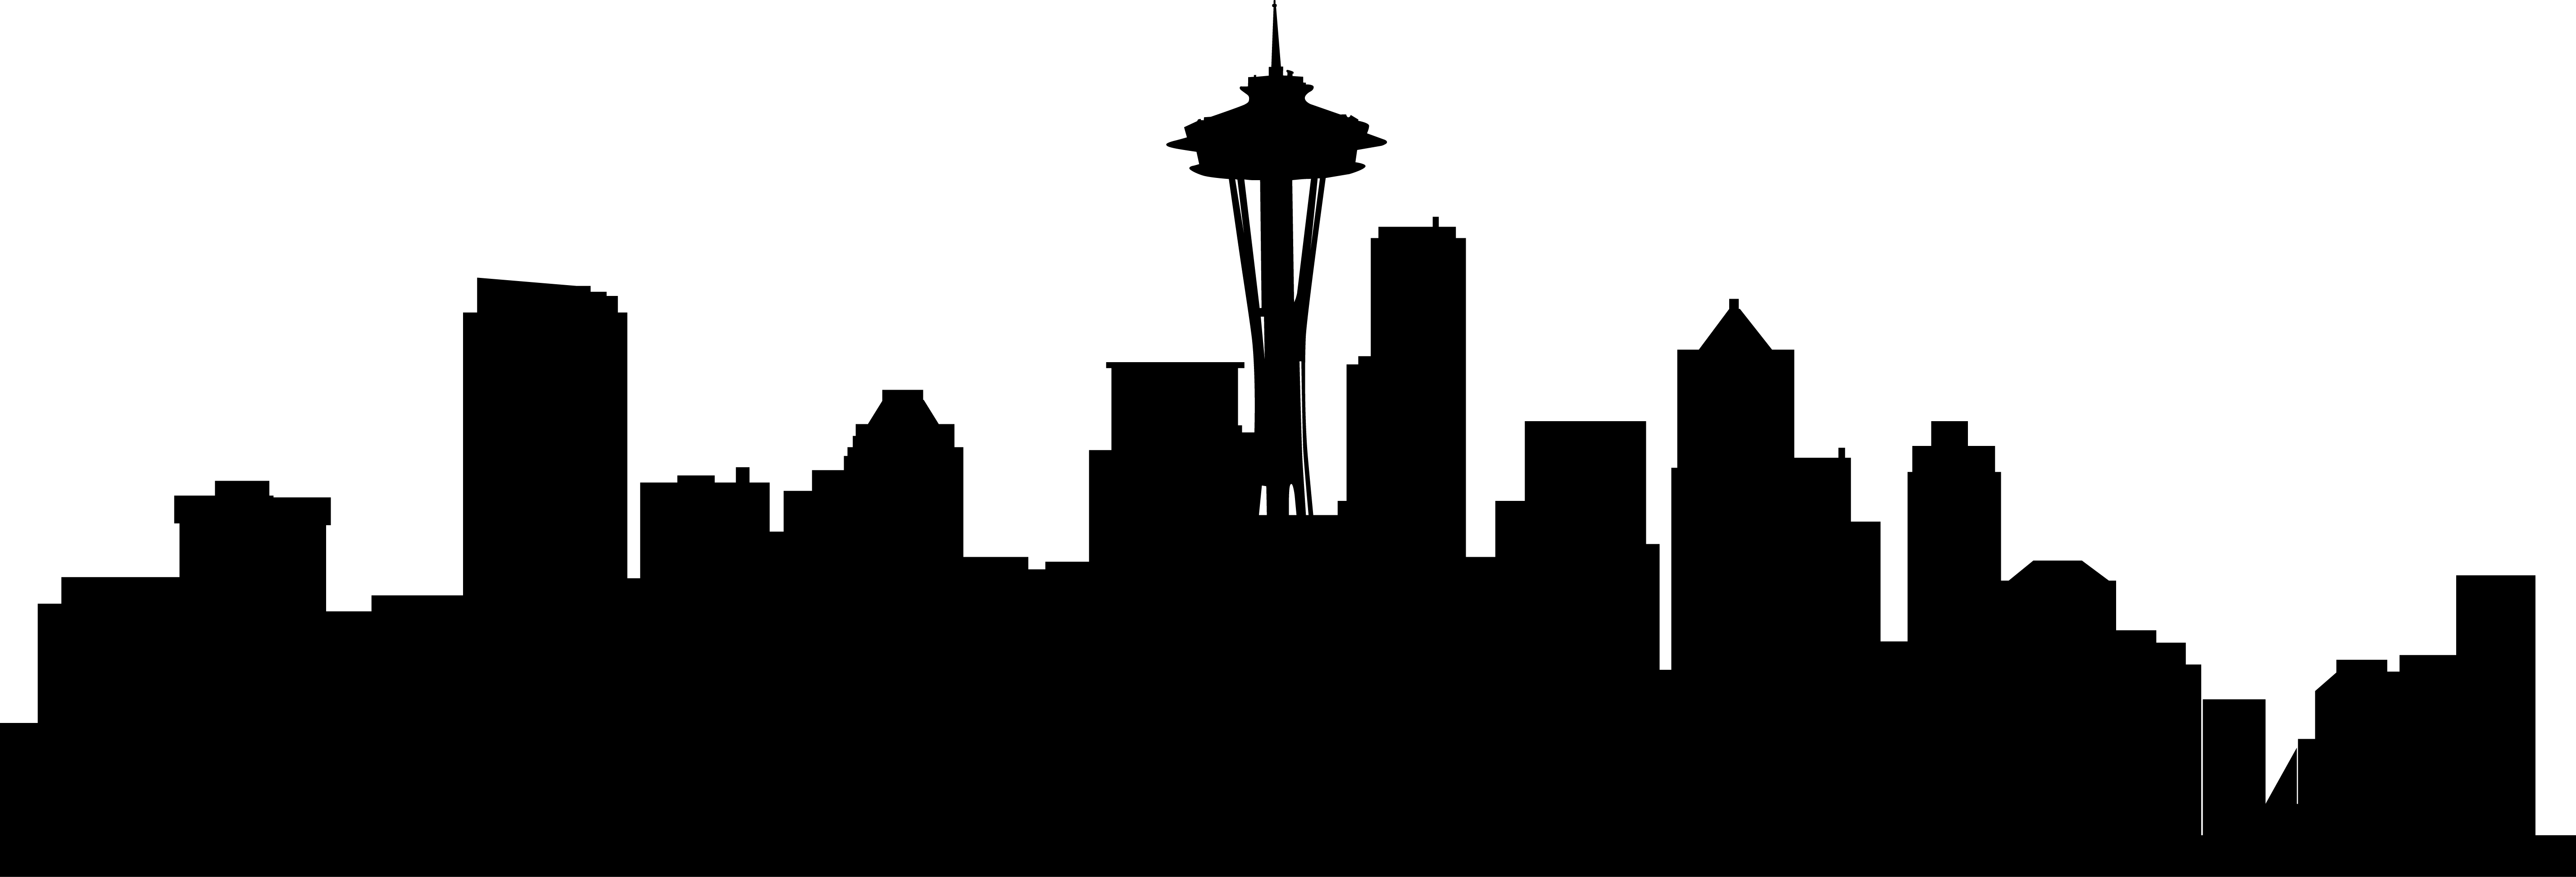 City Skyline Silhouette Vector at GetDrawings.com.